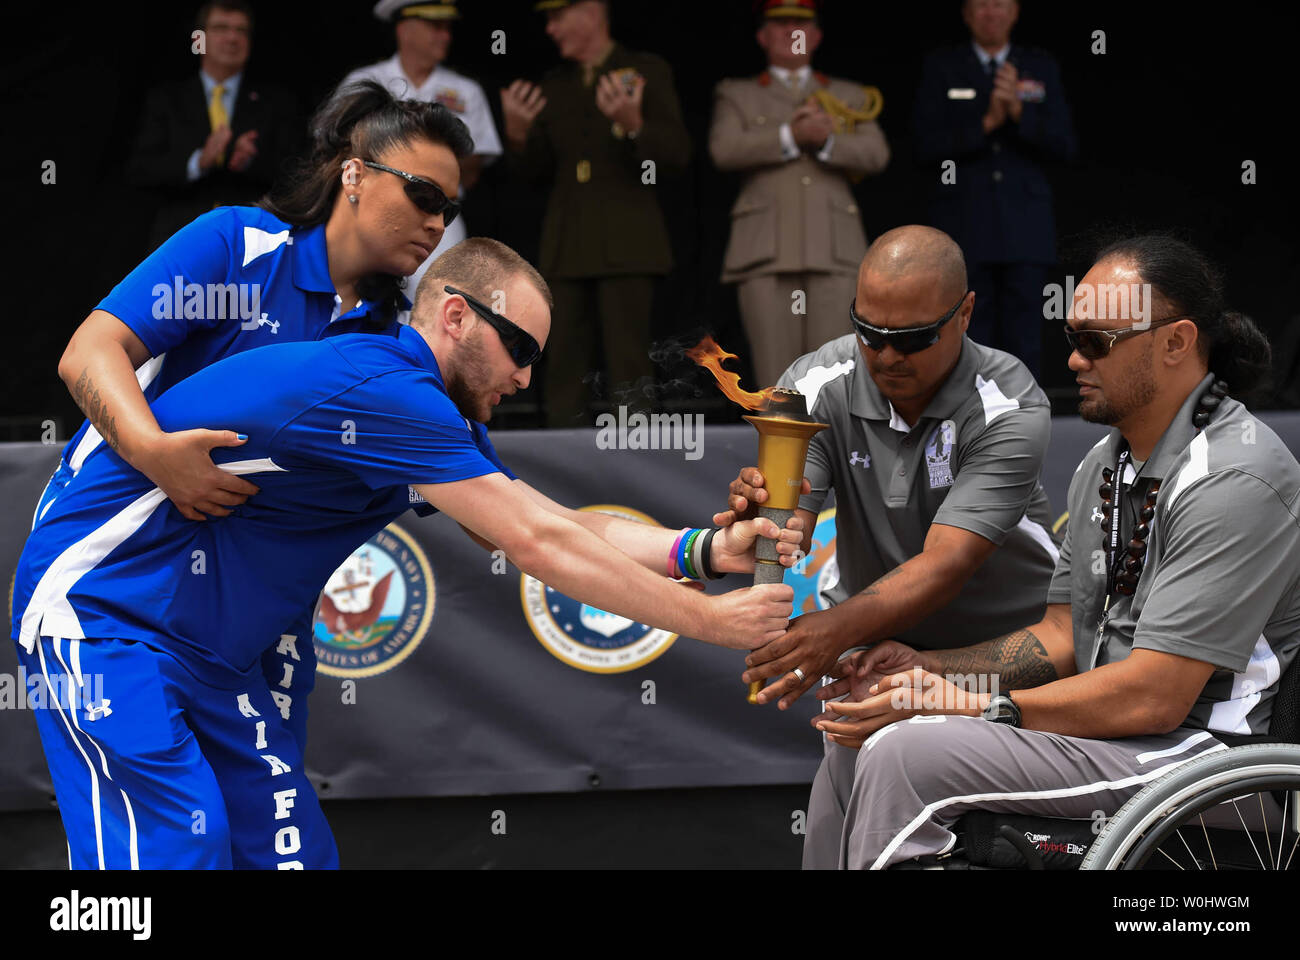 Air Force athlete Kevin O'Brien, held by escort Jennifer Stone, passes the torch to SOCOM athlete Sualauvi Tumalealiifano, right, with the help of escort Alfred D. Martinez, during the torch relay at the opening ceremony of the 2015 Department Of Defense Warrior Games at the United States Marine Corps base in Quantico, Va.,  June 19, 2015.  Photo by Molly Riley/UPI Stock Photo